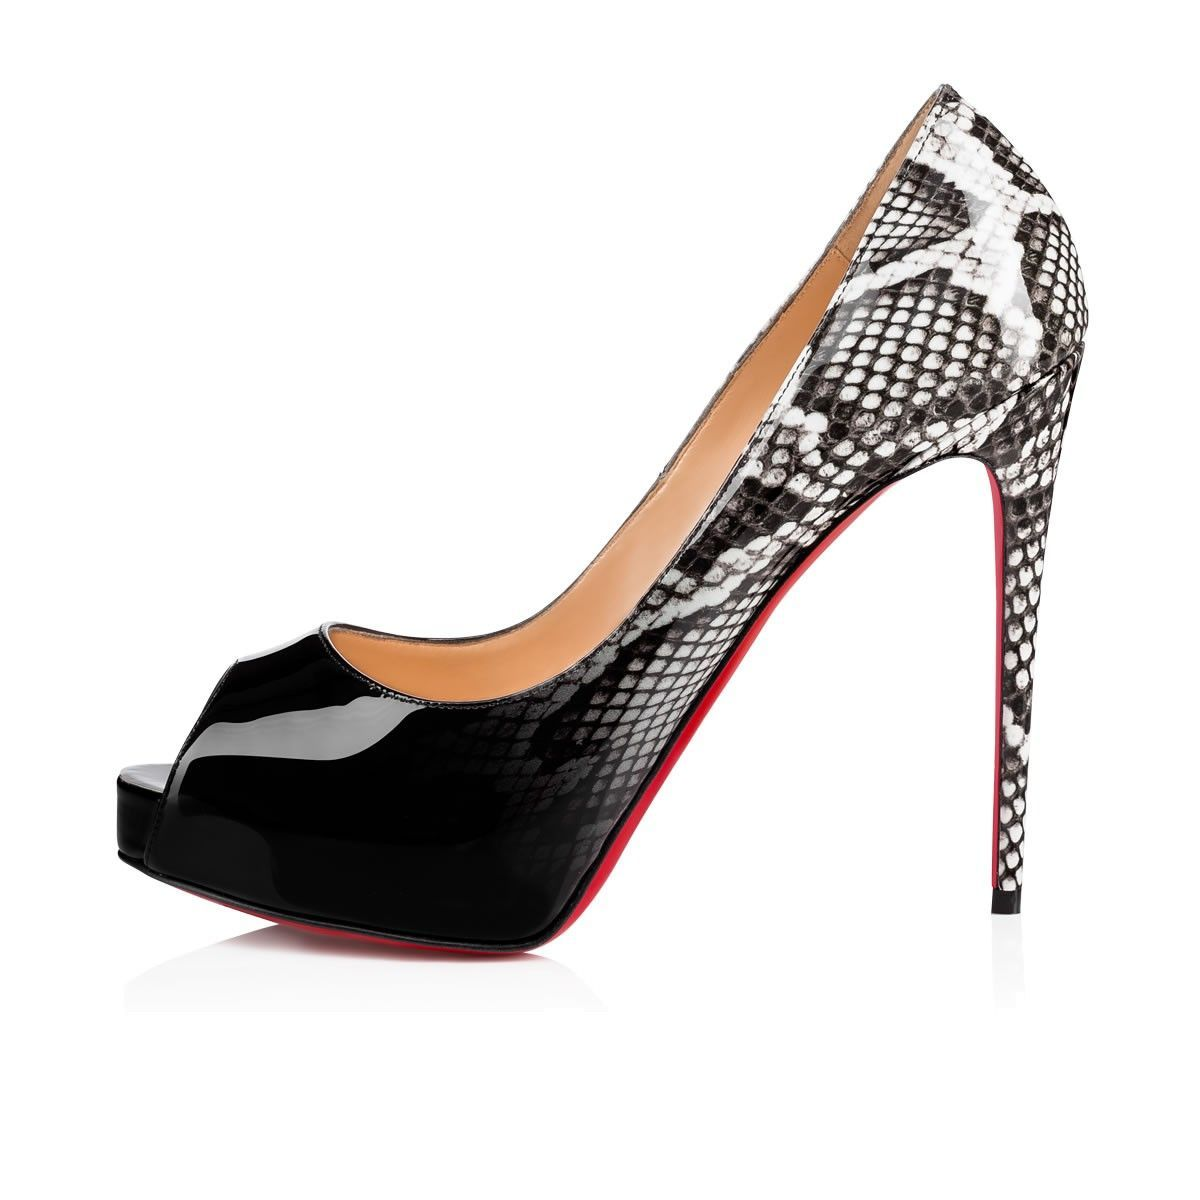 99211831a72 Shoes - New Very Prive Patent Degrade Roccia - Christian Louboutin